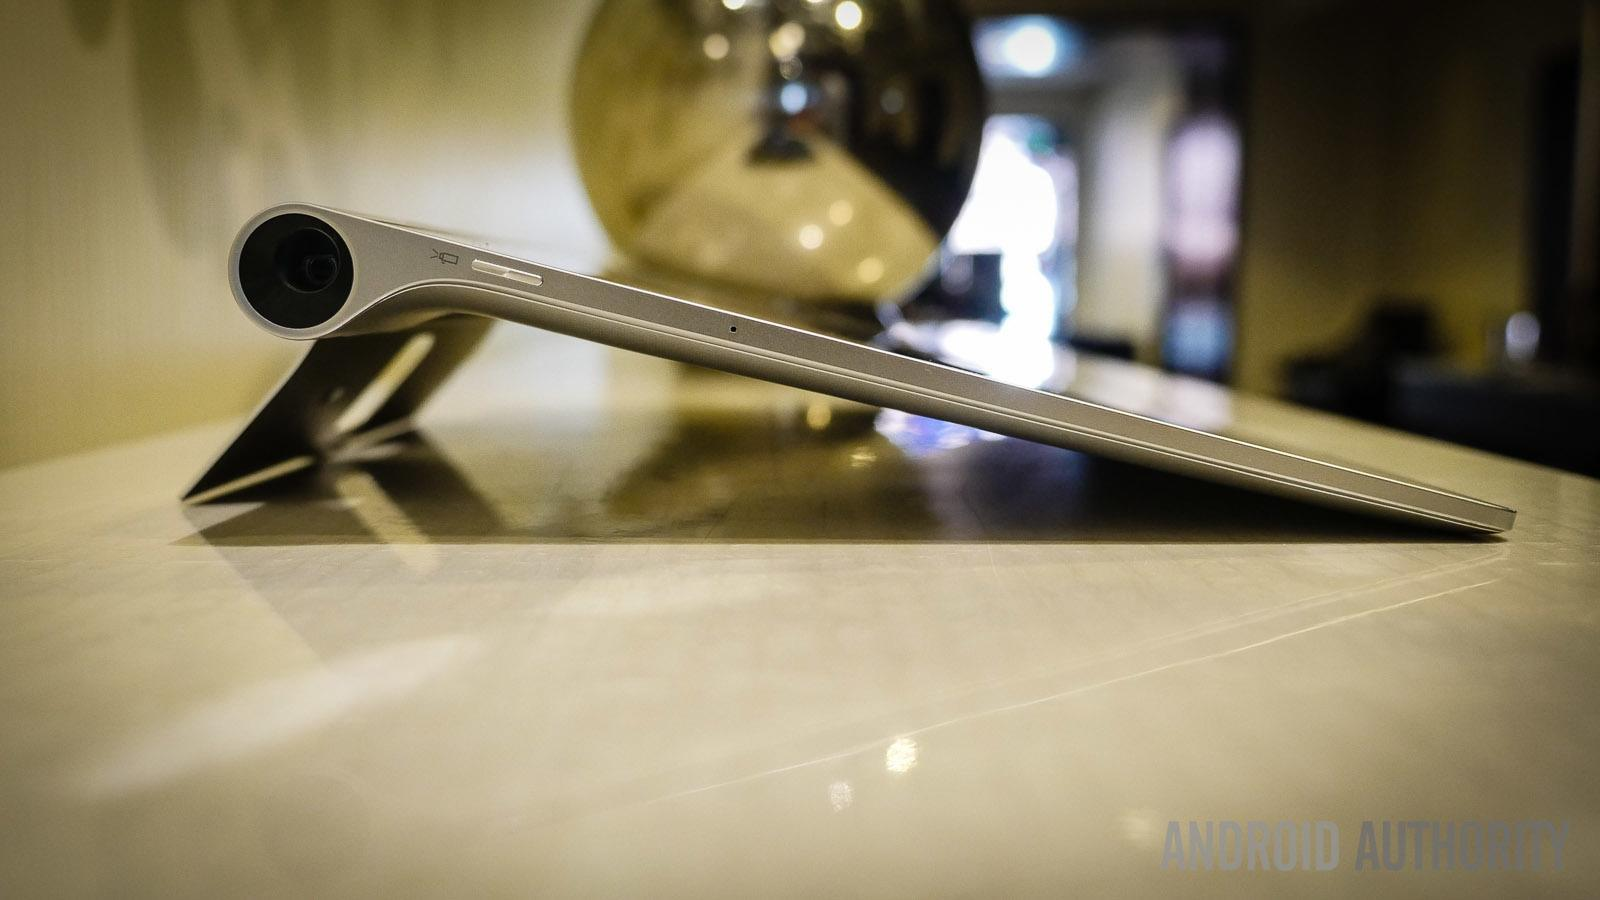 lenovo-yoga-tablet-2-pro-first-look-aa-15-of-19